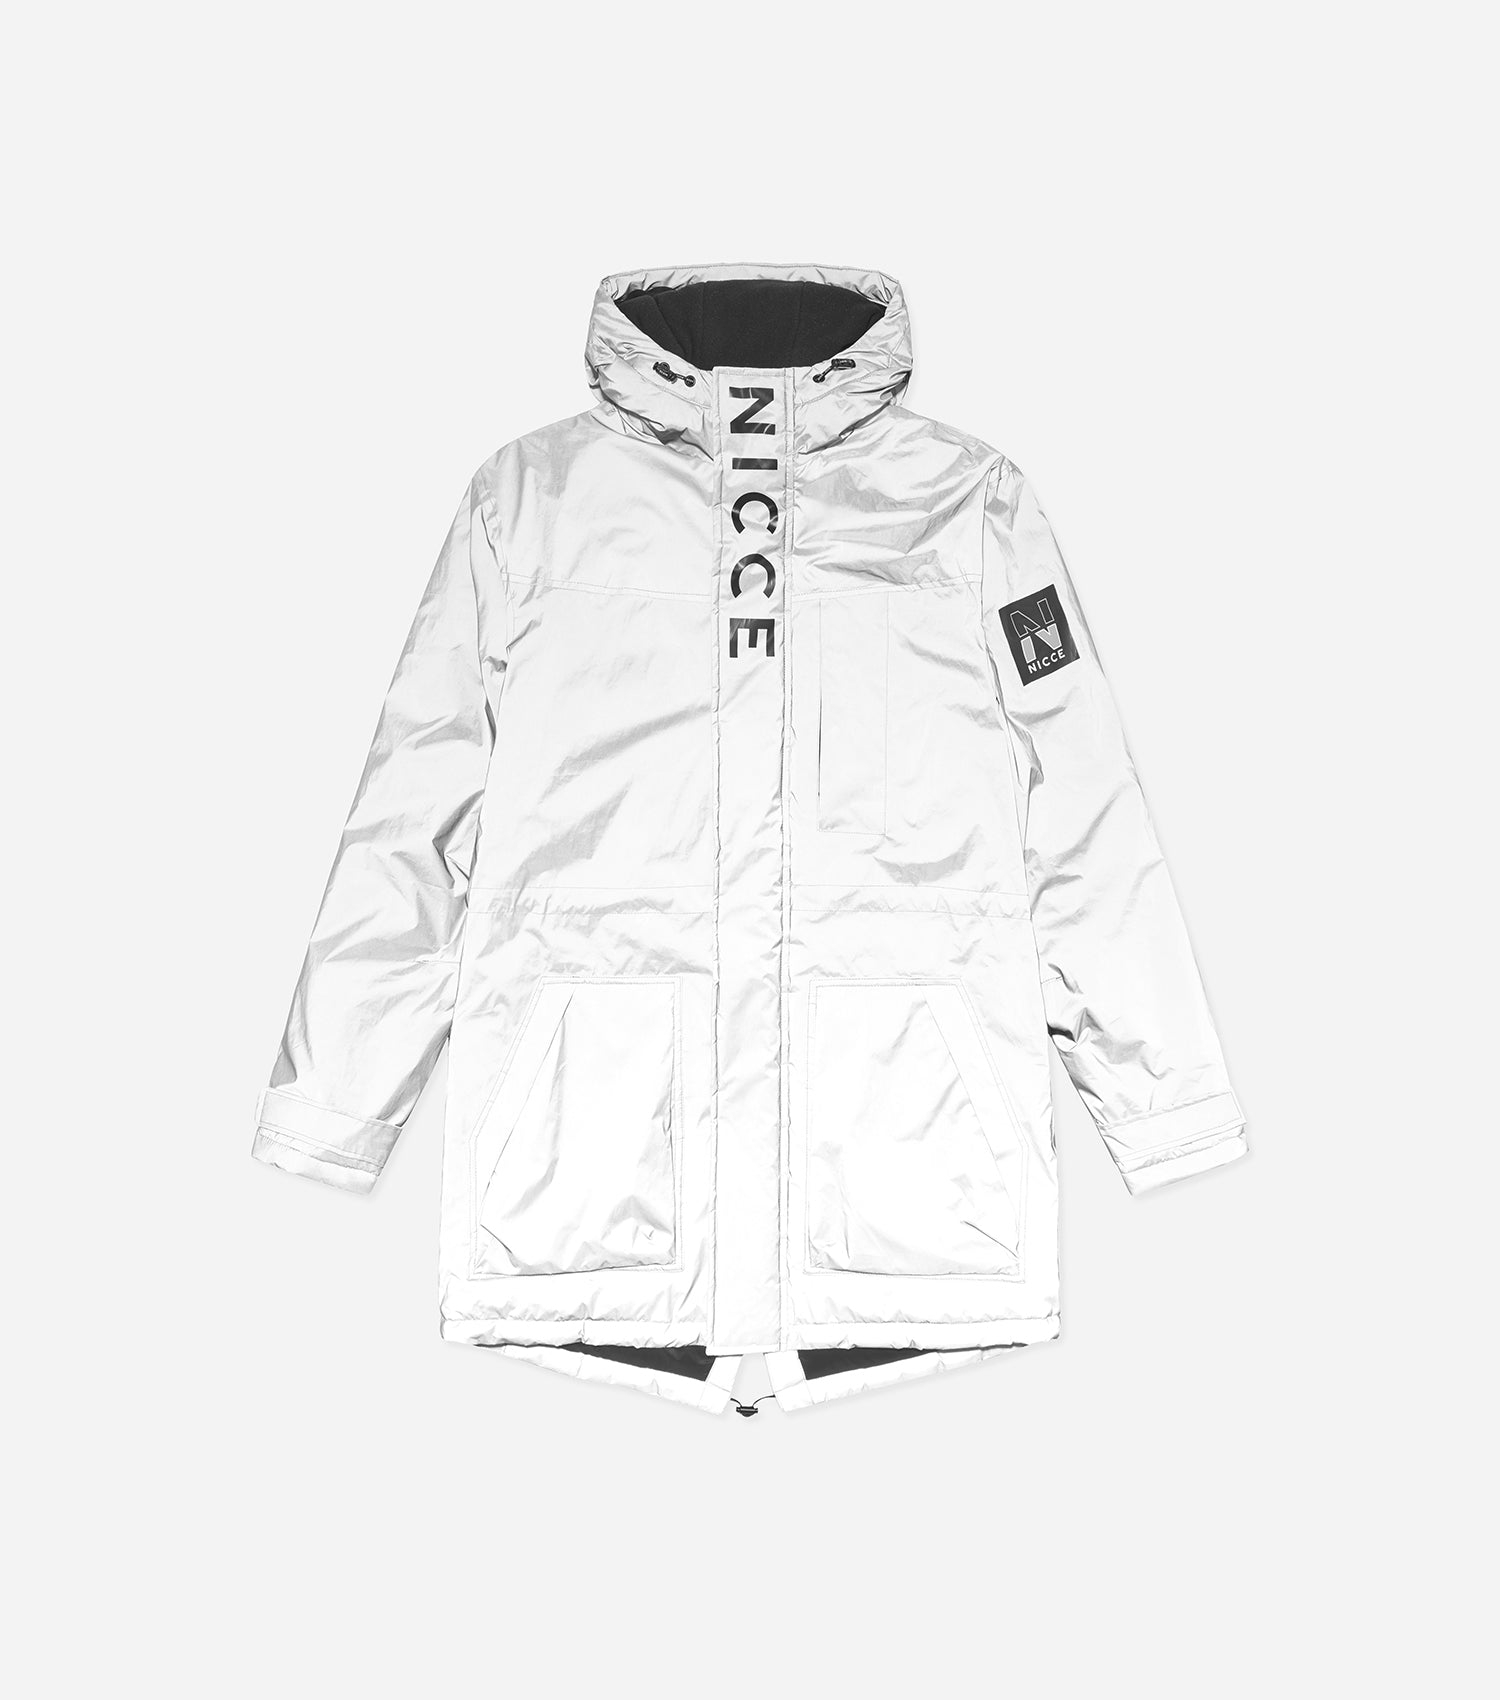 Reflecta parka made in a reflective material. Features hood, two front zip pocket, front printed branding, full hidden zip and adjustable cuffs. Pair with denim or joggers.